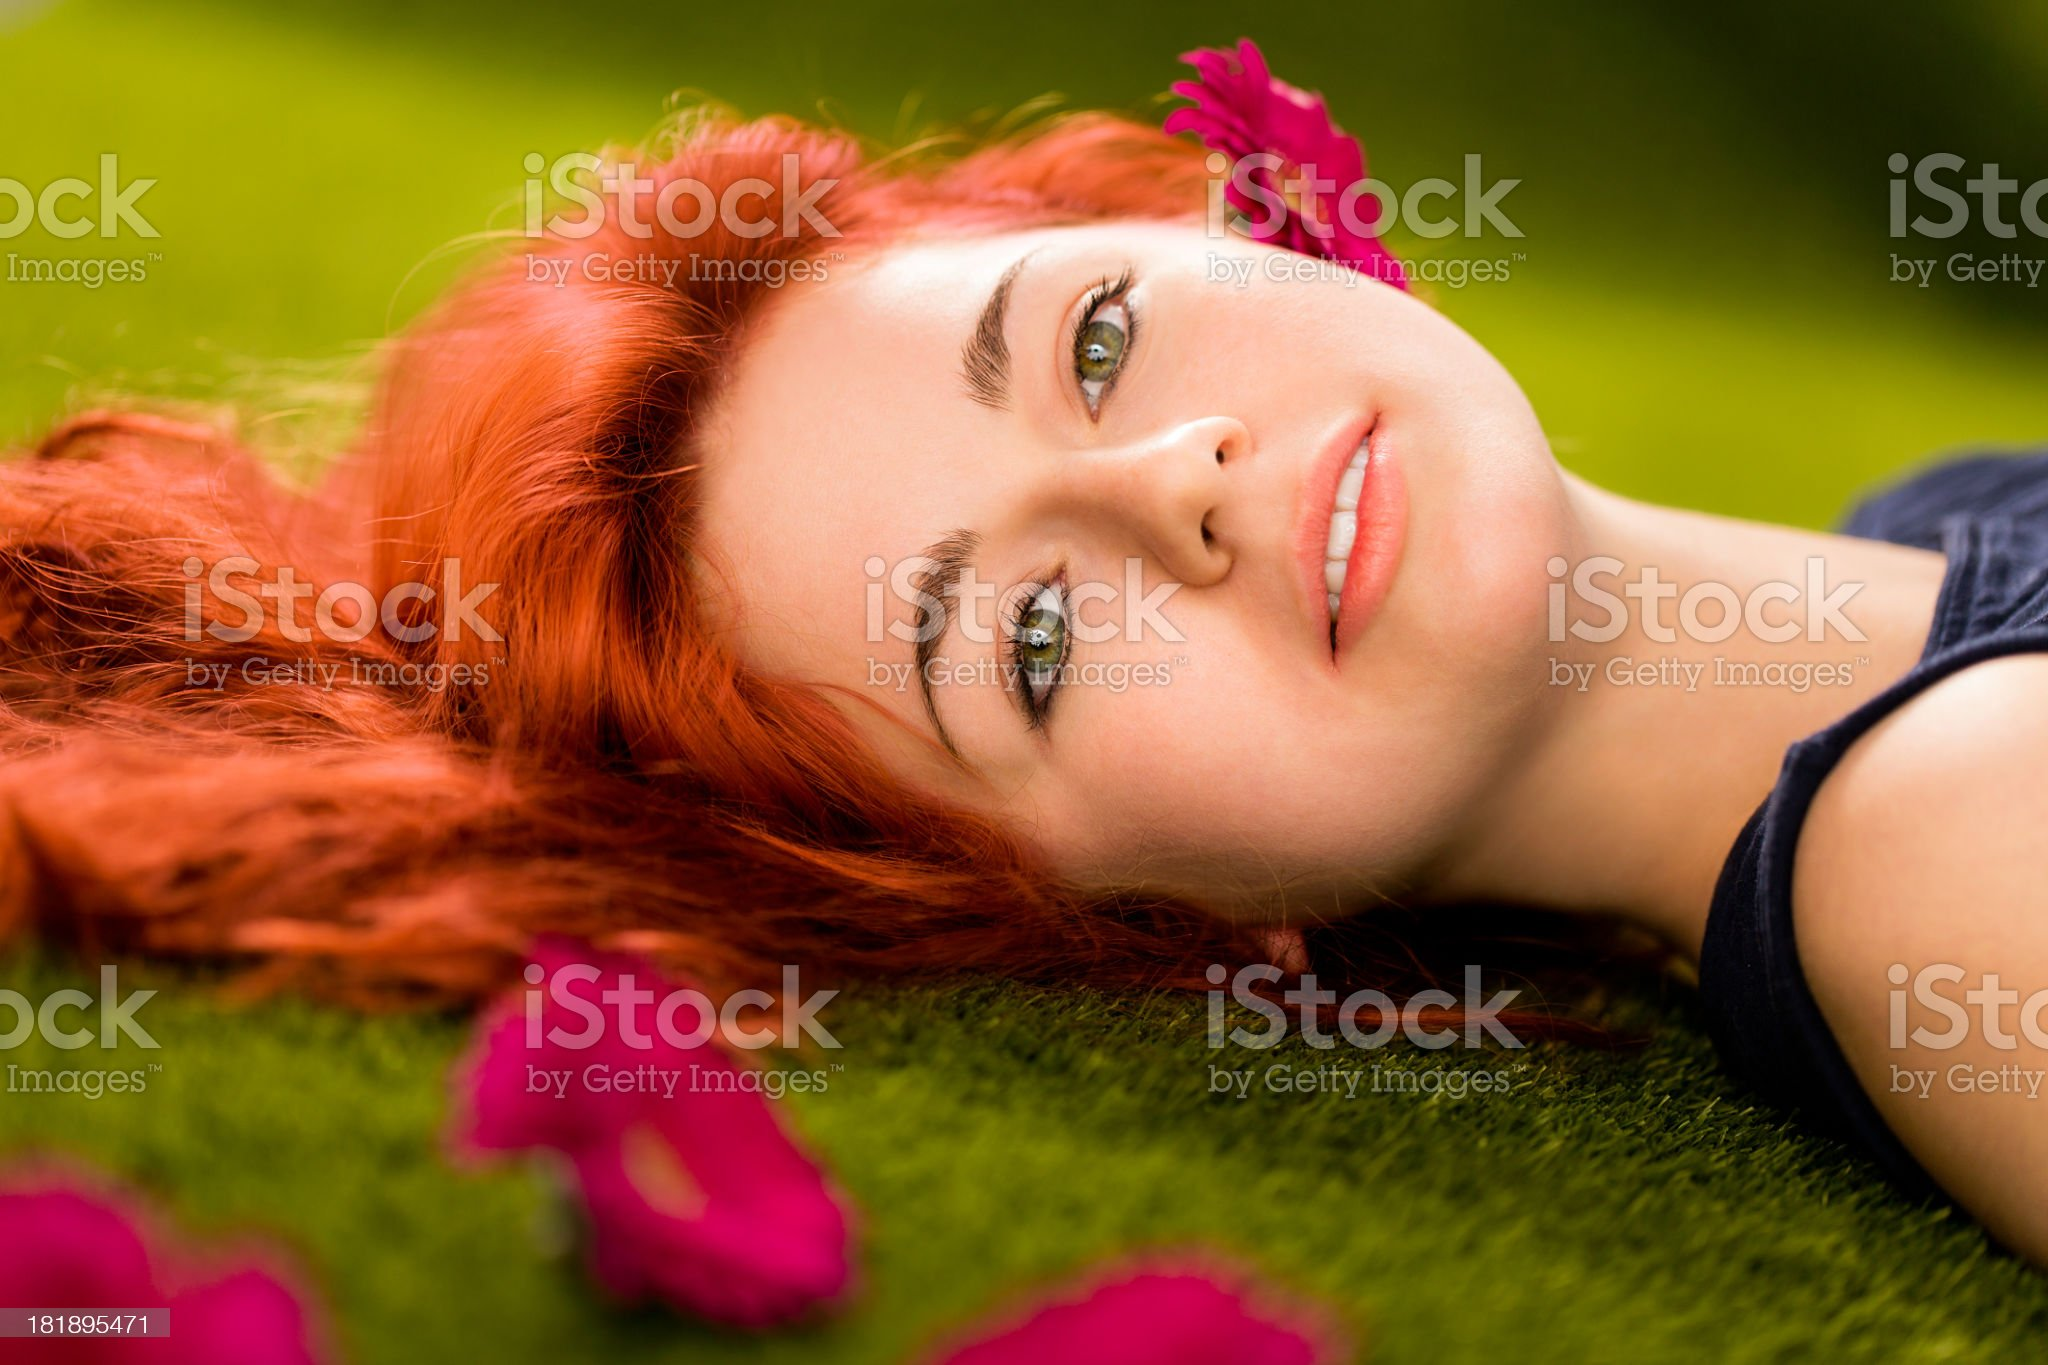 Girl relaxing in park with red blossoms royalty-free stock photo